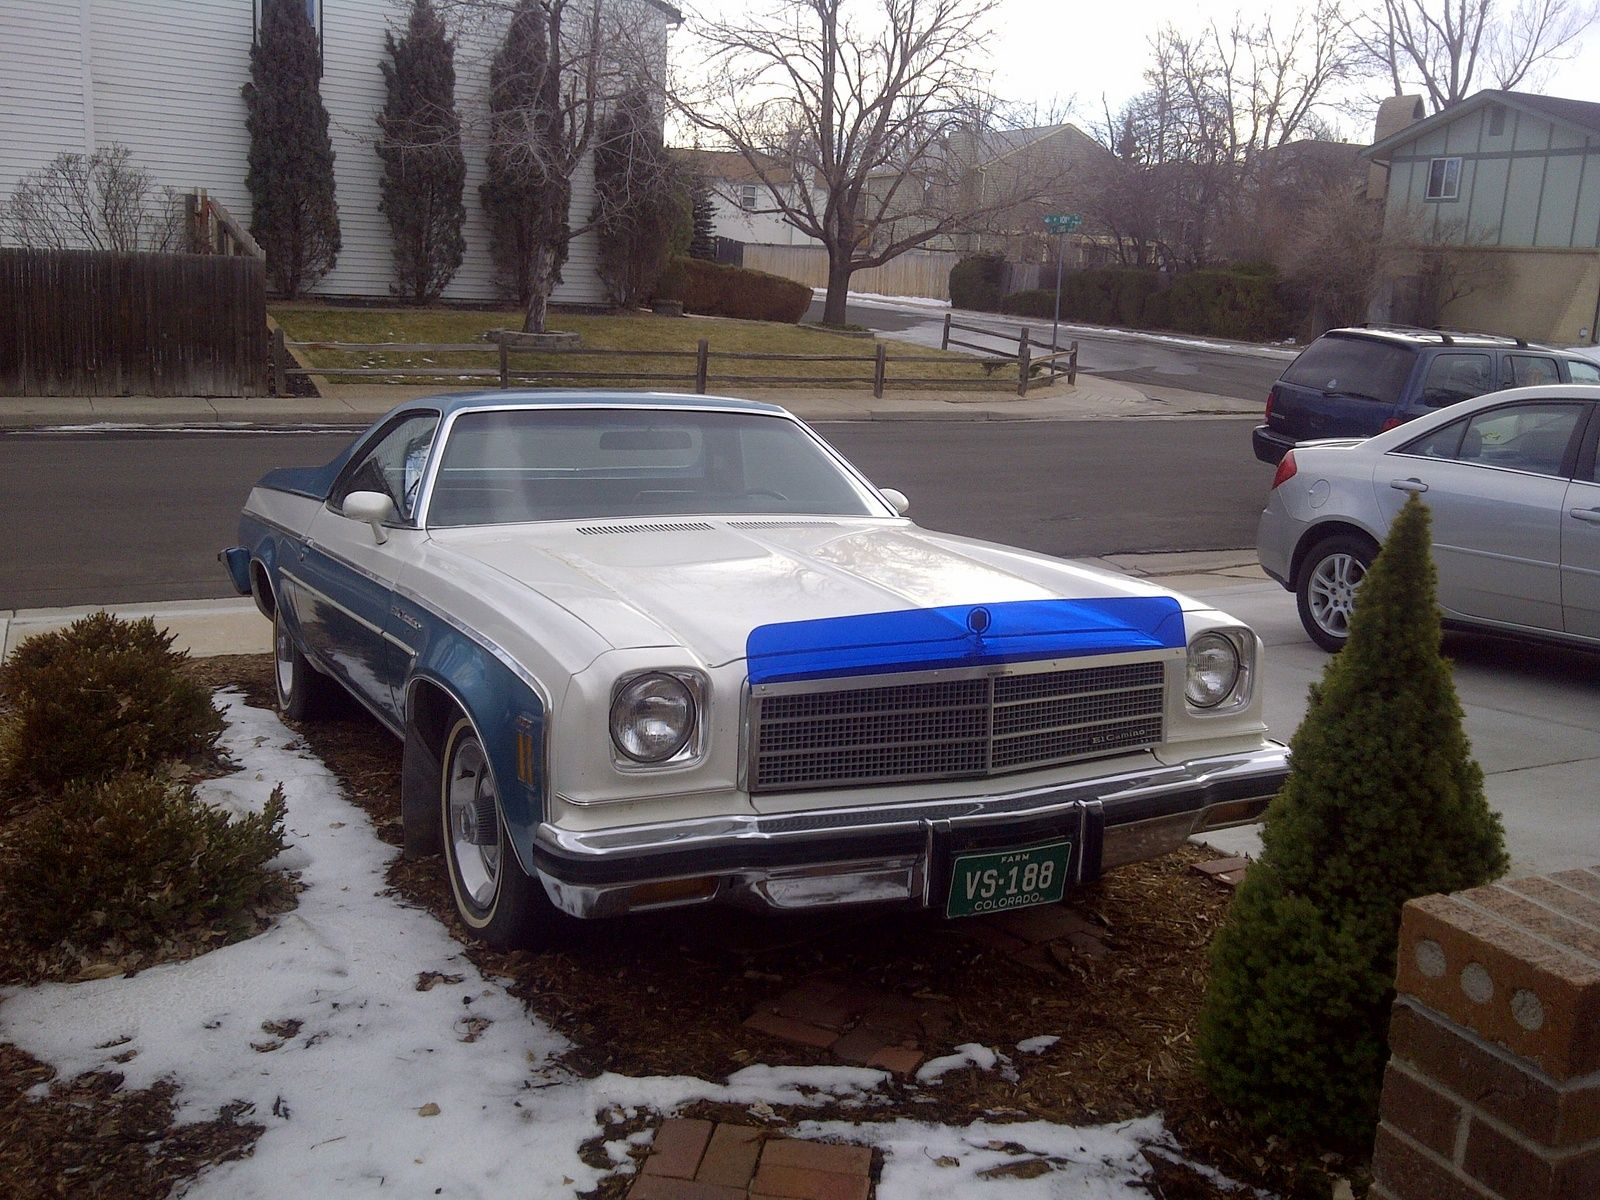 hight resolution of 1974 chevrolet el camino pictures see 25 pics for 1974 chevrolet el camino browse interior and exterior photos for 1974 chevrolet el camino